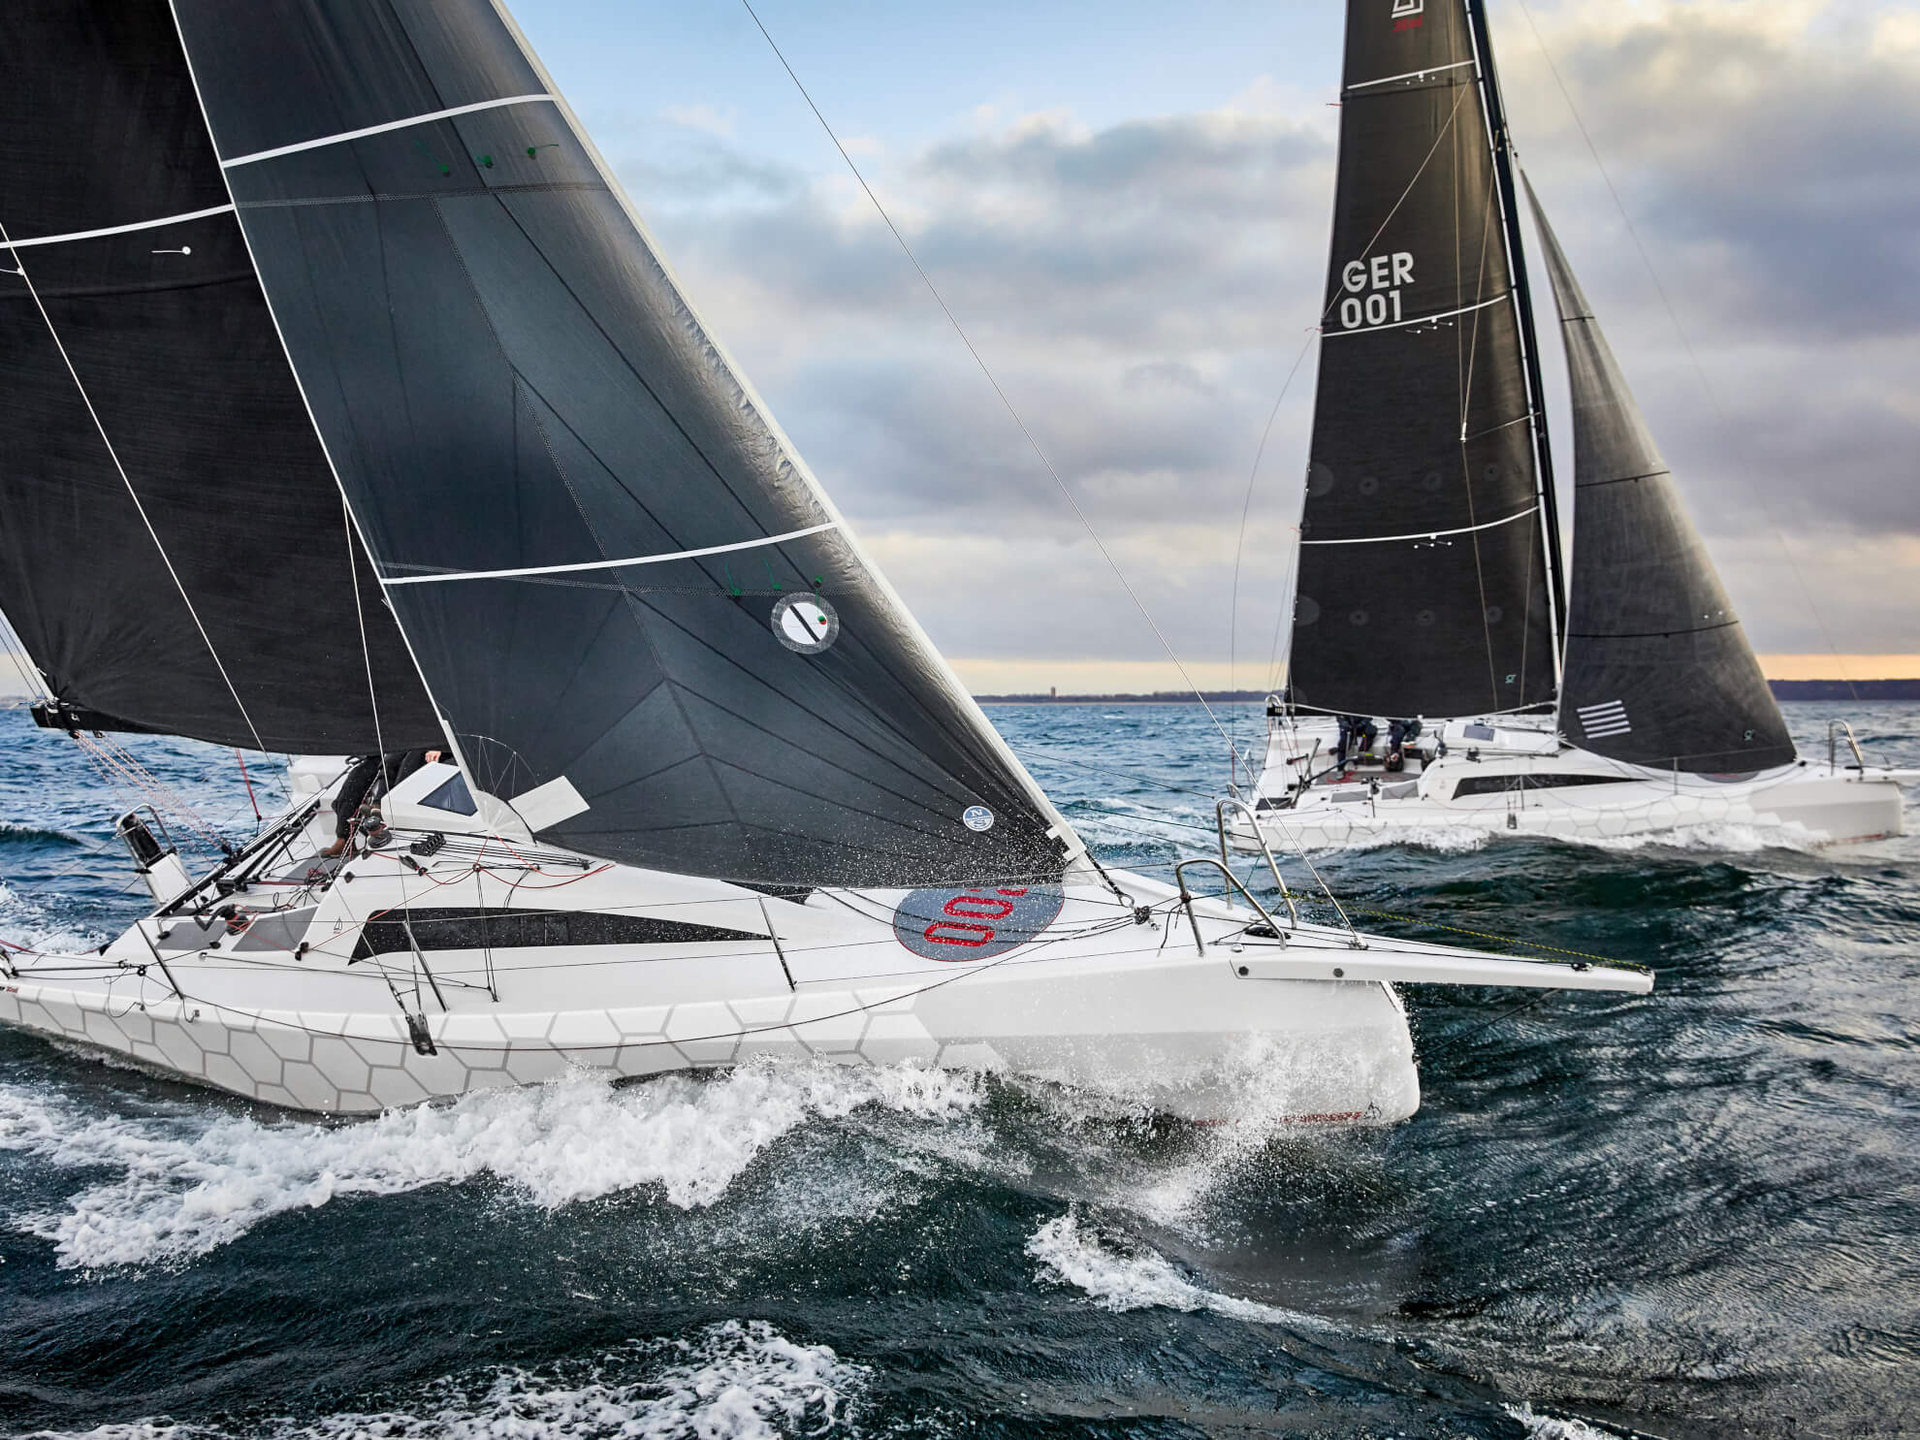 360 VR Virtual Tours of the Dehler 30 One Design – VRCLOUD